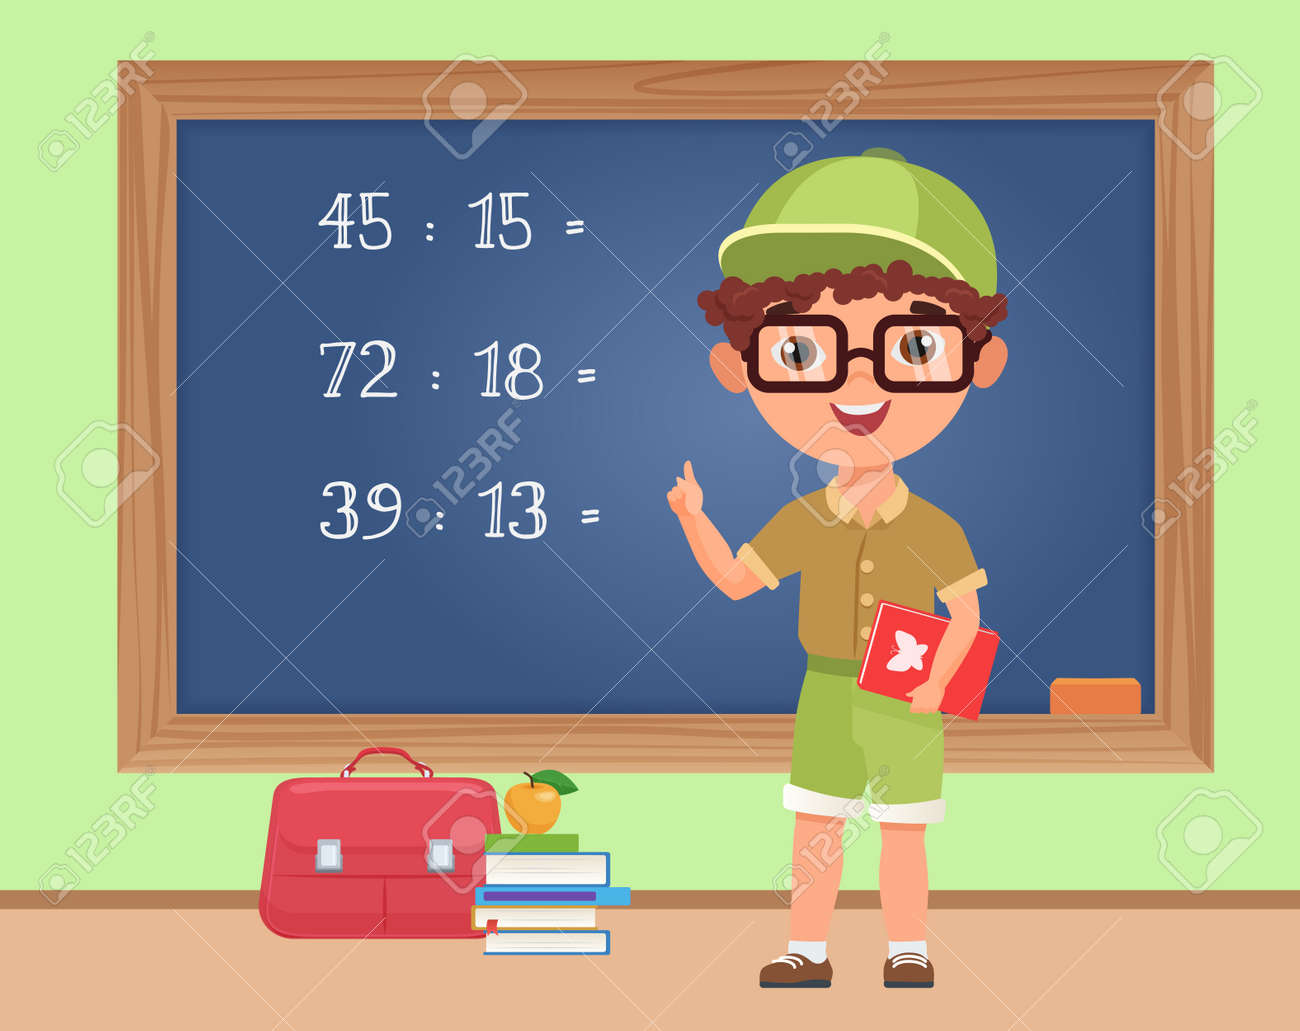 Kid boy student studying math in classroom, education vector illustration. Cartoon schoolboy standing at blackboard to write mathematical exercise, elementary school pupil on math lesson background - 169878341